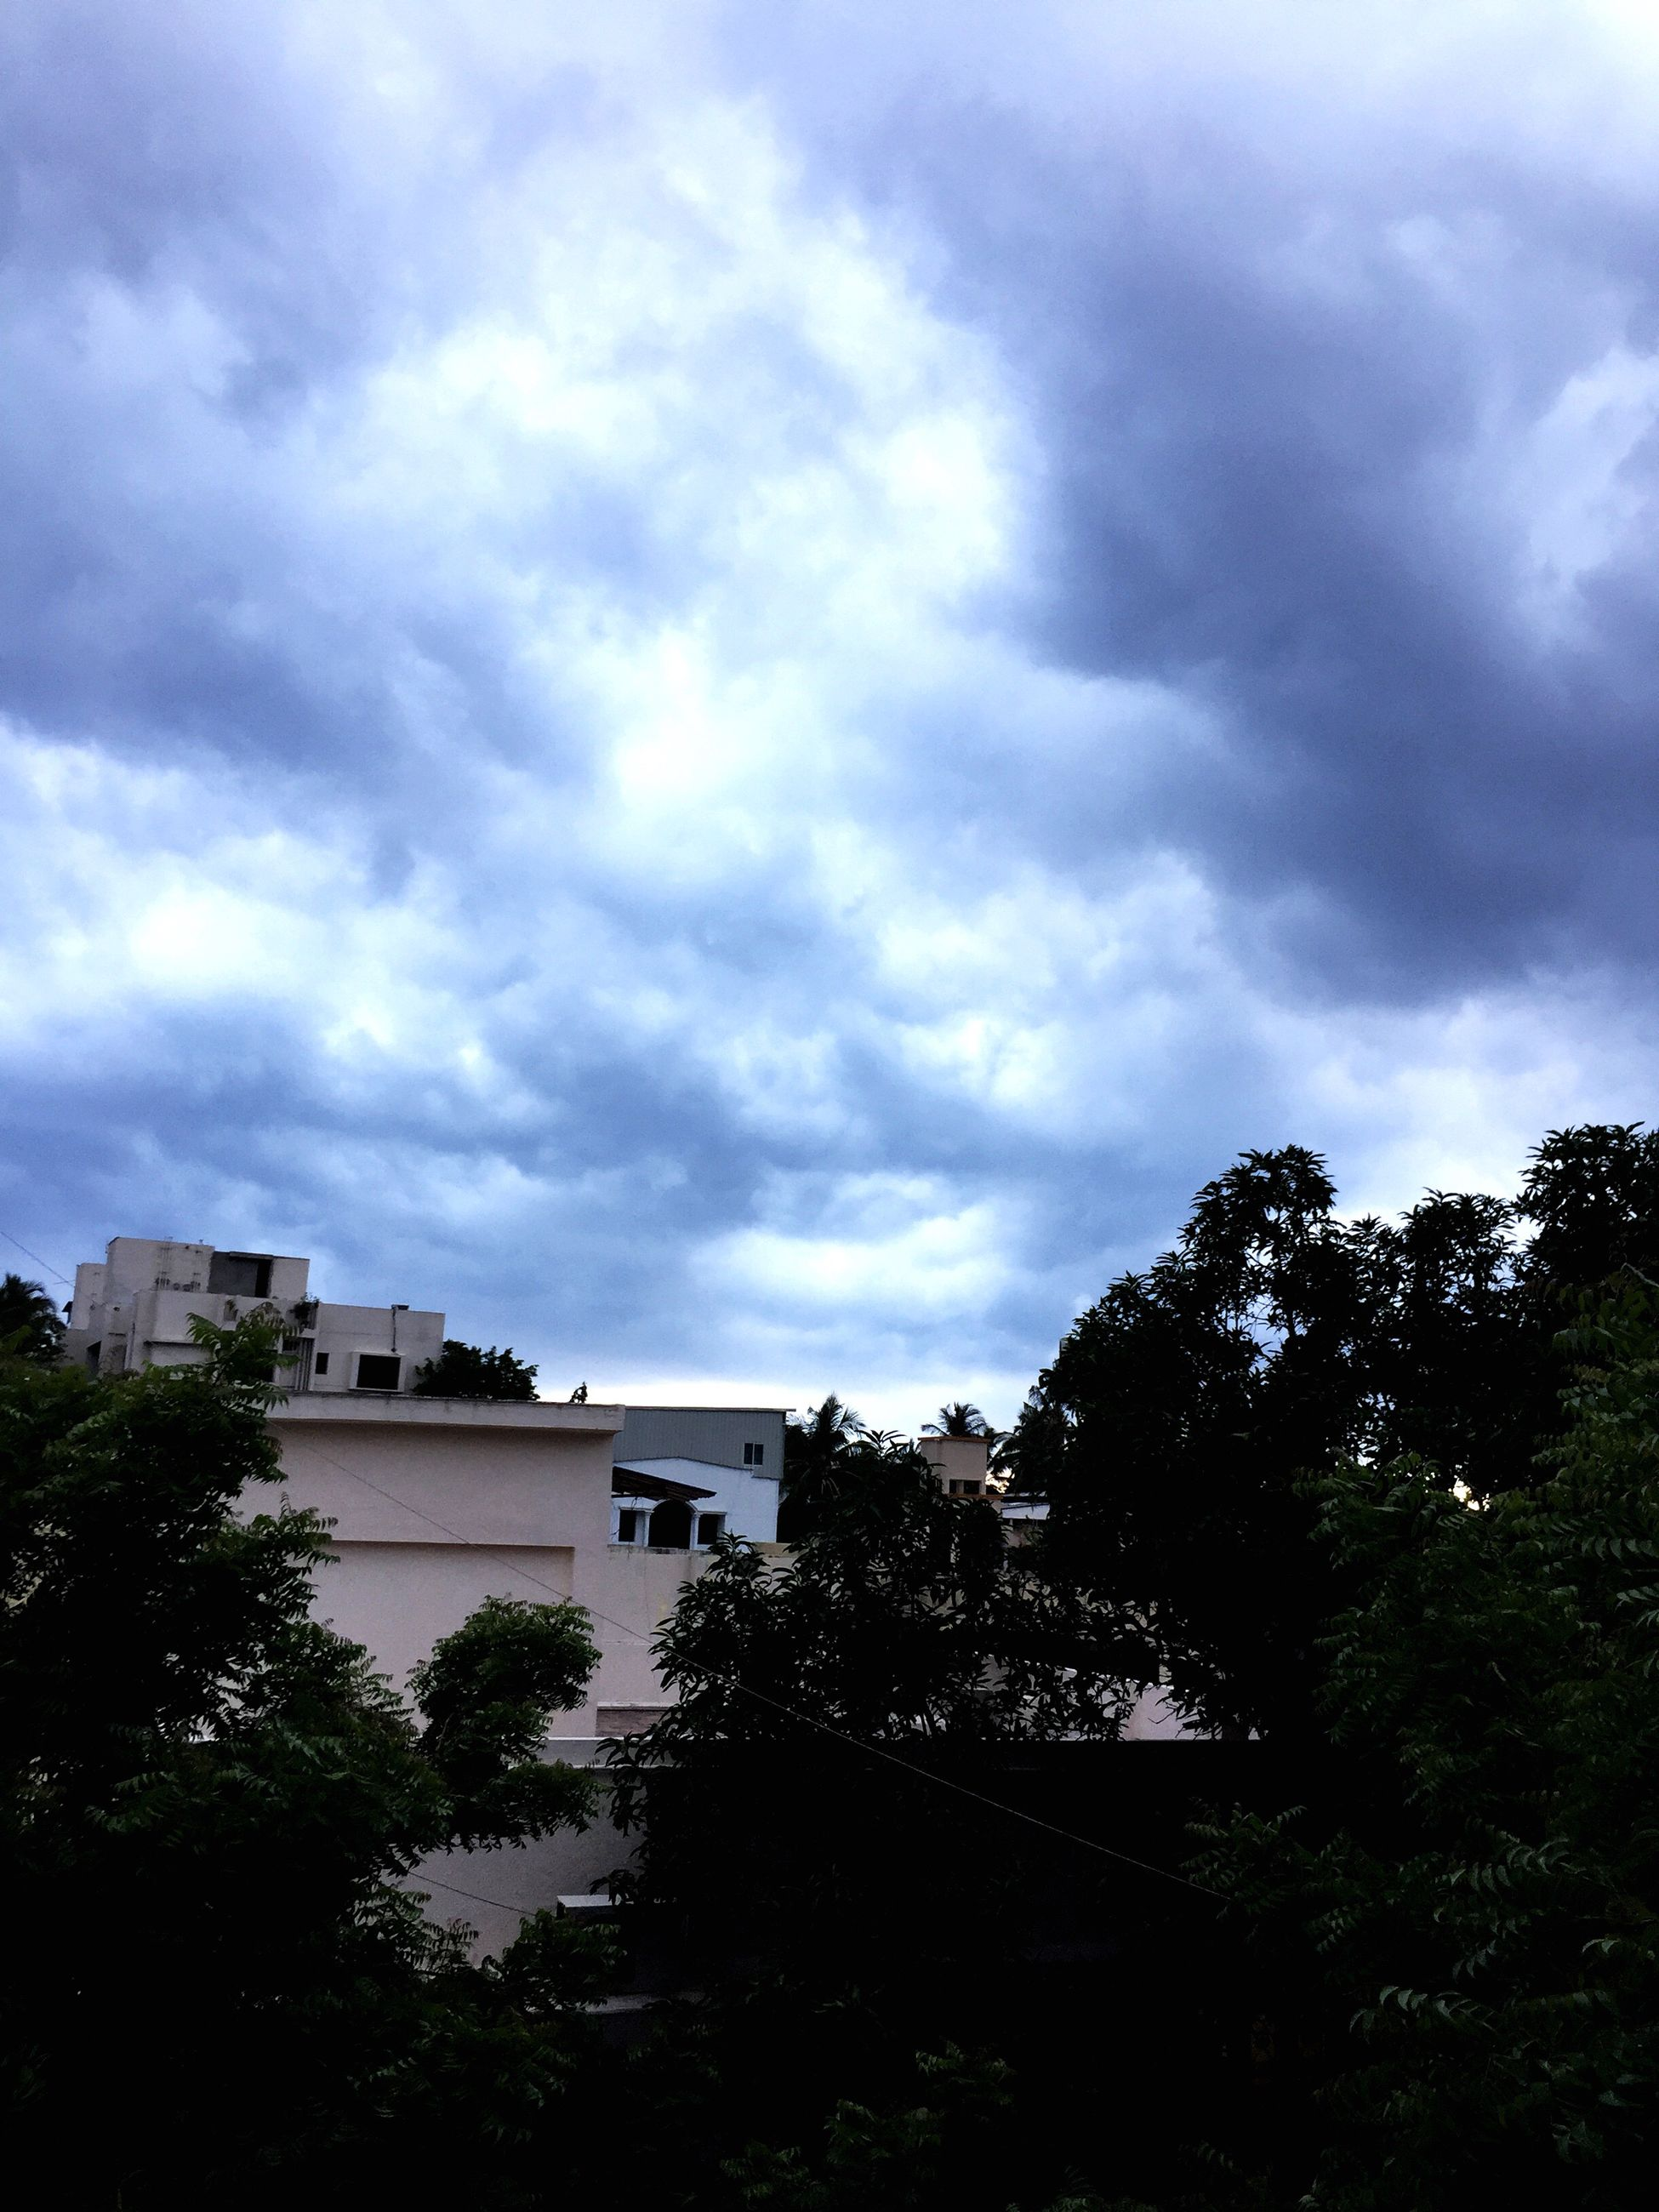 tree, sky, cloud - sky, built structure, architecture, nature, silhouette, building exterior, no people, outdoors, low angle view, day, beauty in nature, scenics, storm cloud, city